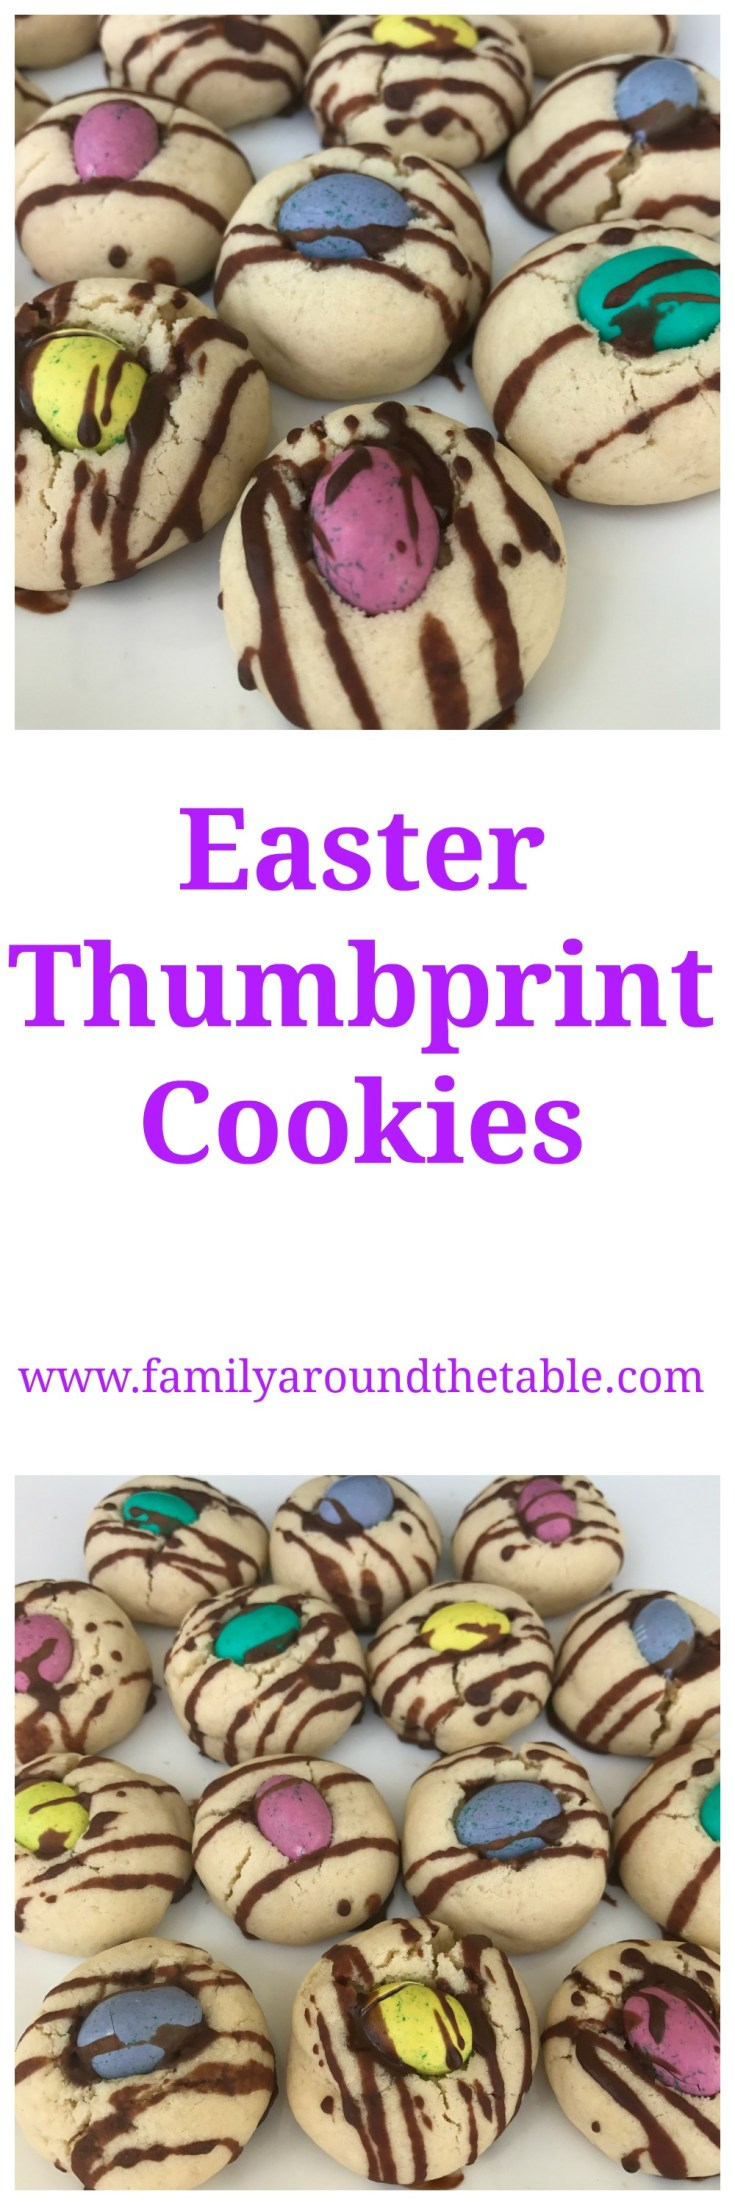 A chocolate drizzle on these Easter thumbprint cookies takes them over the top!